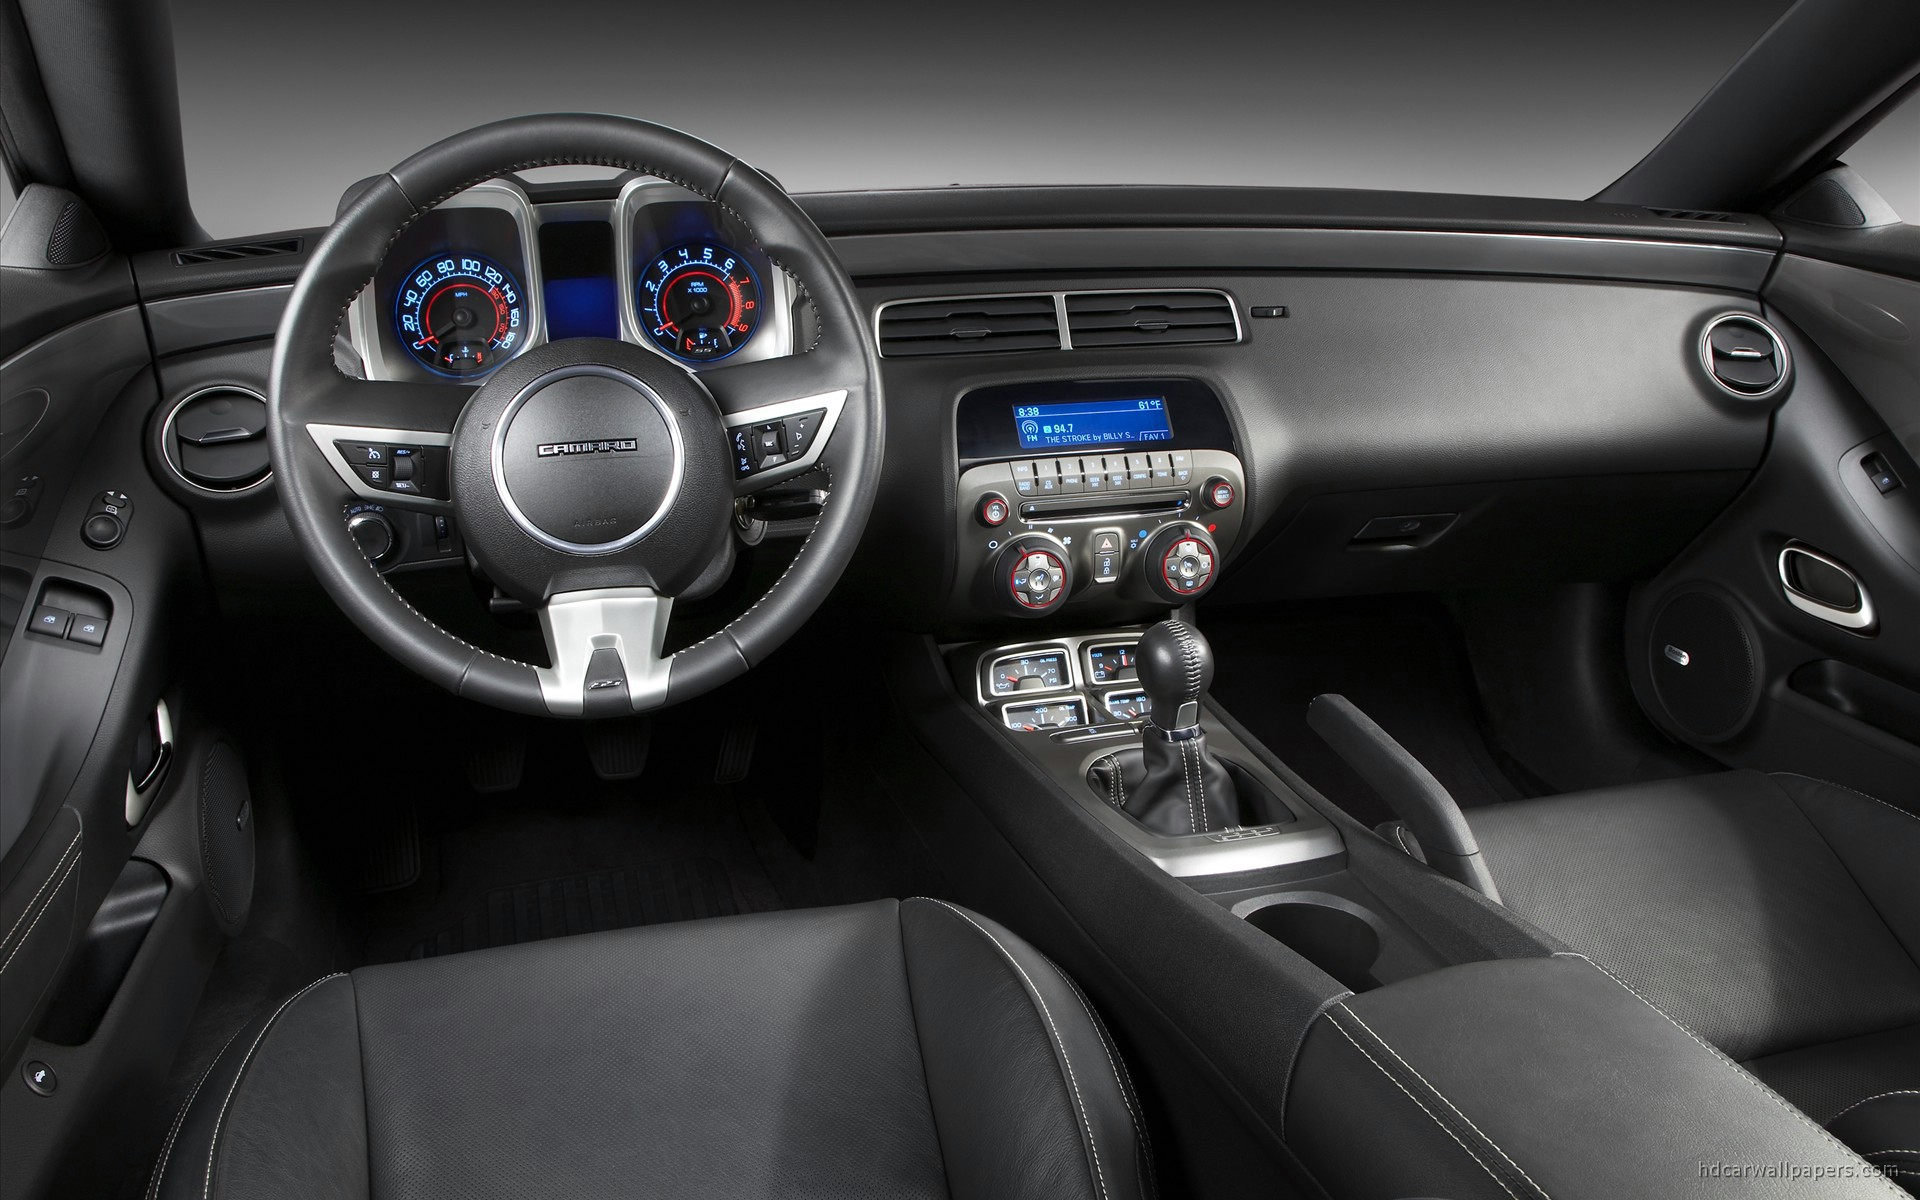 2010 Chevrolet Camaro Ss Interior Wallpaper Hd Car